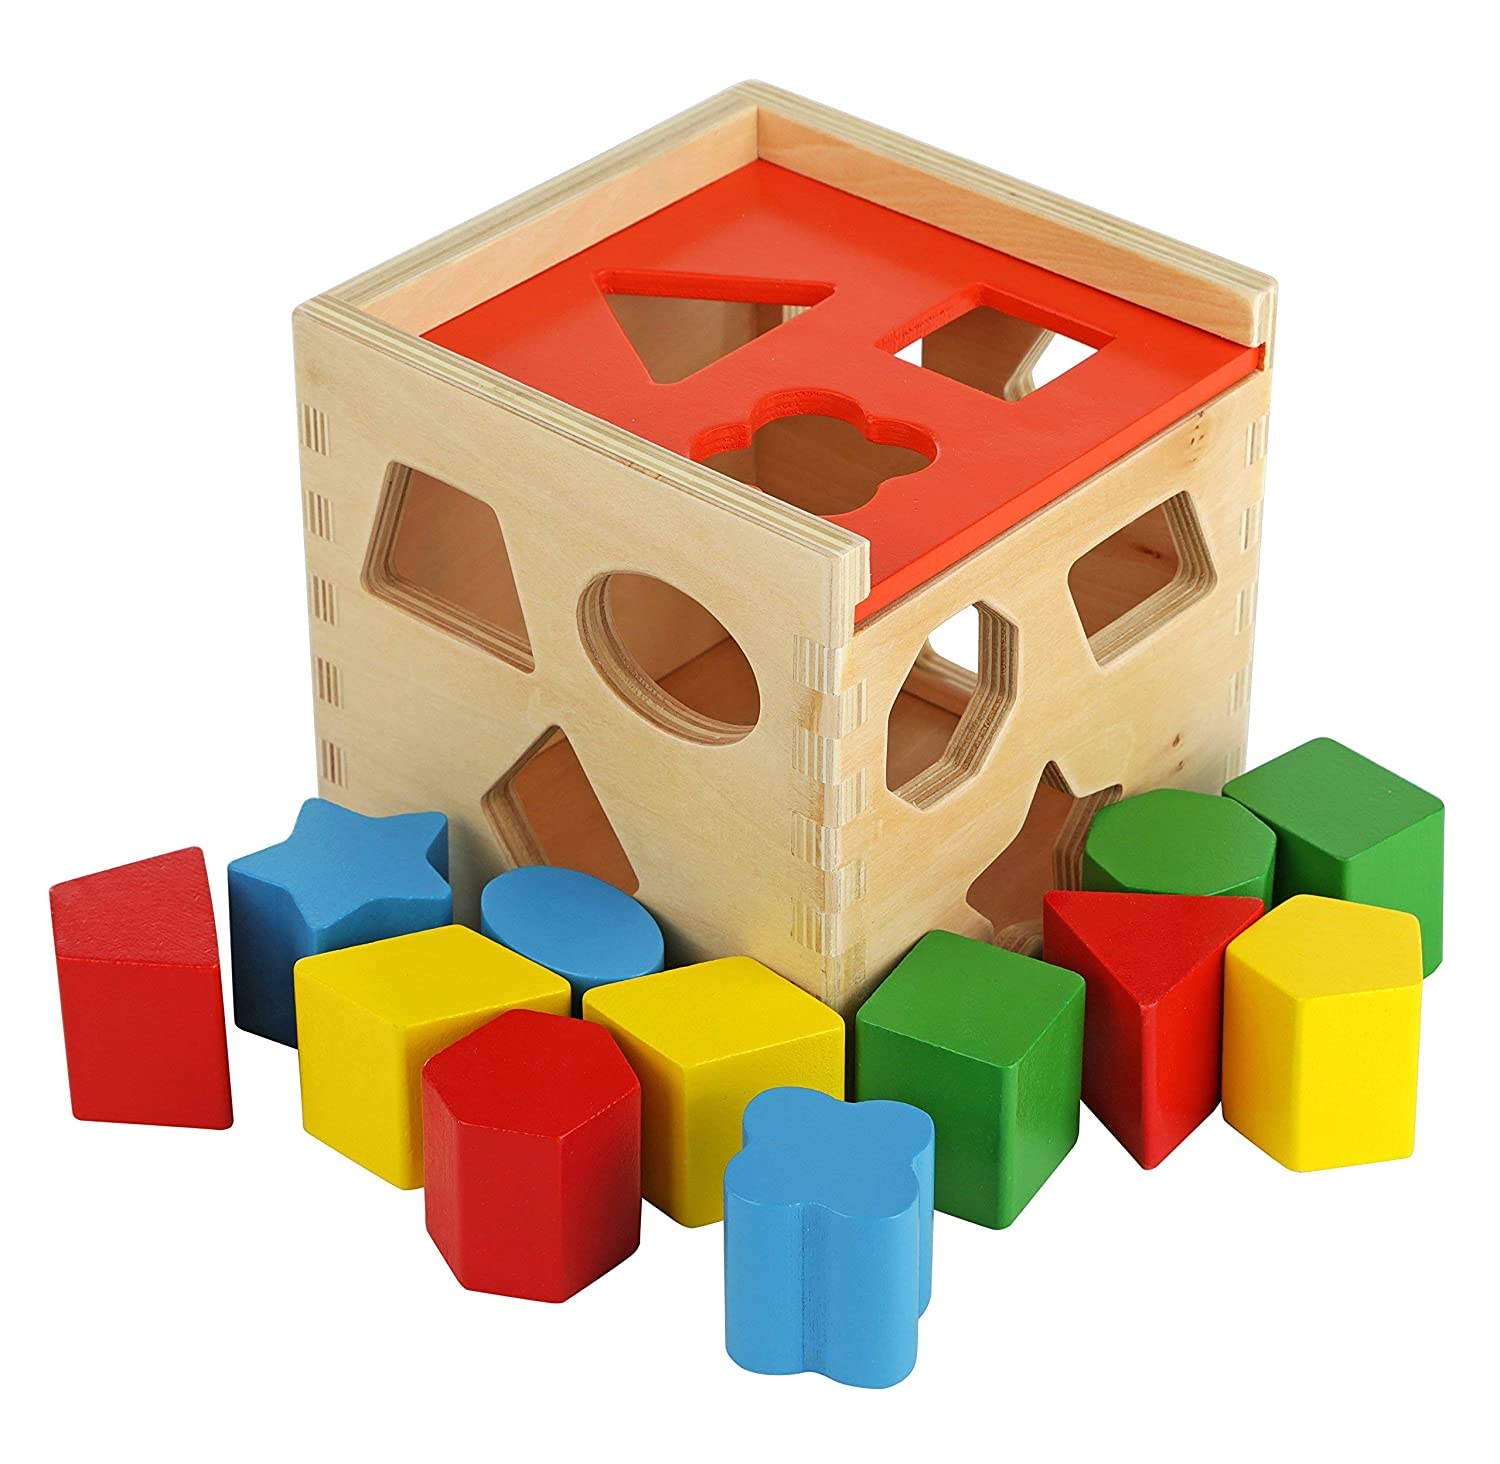 2 Years and Up Colorful Shape Cube Sorting Puzzle Solid Wood Toy with 12 Shapes Classic Early Development Shape Recognition Toy Toy Chest Nyc Educational Baby Toy for Toddler Boys and Girls Age 18-24 Months